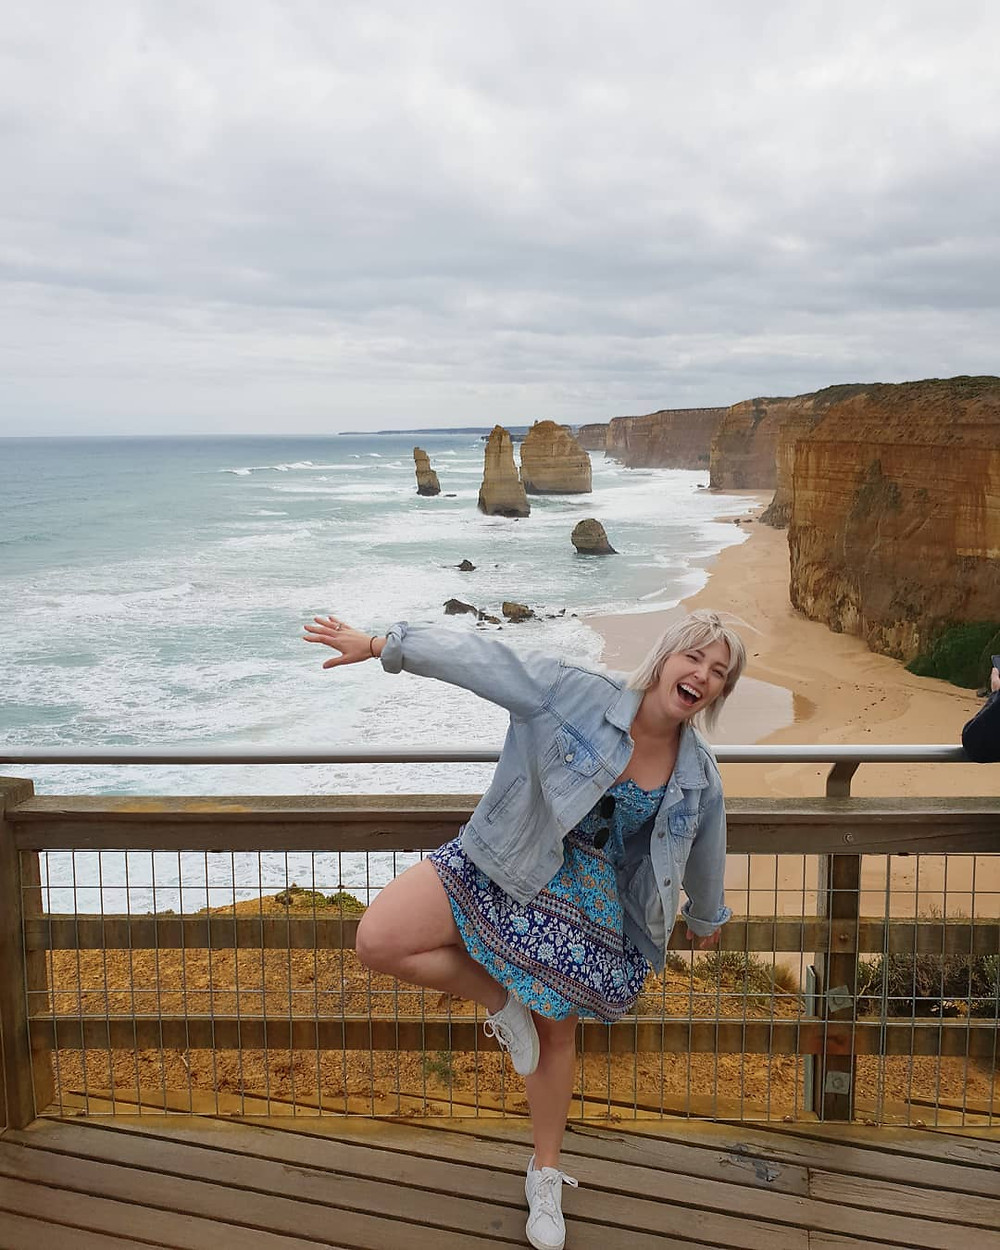 Great ocean road, too windy for yoga